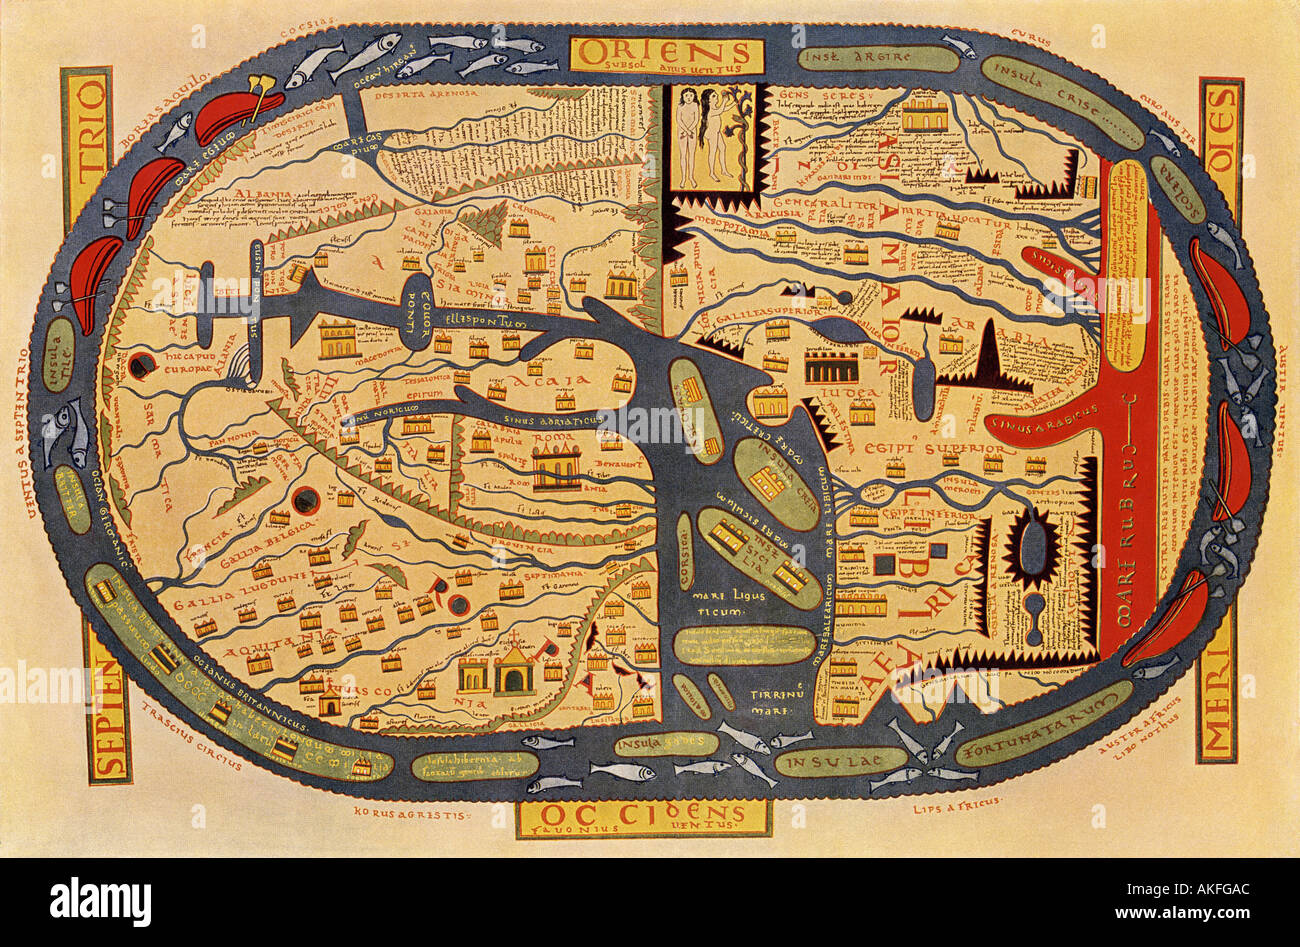 World map of the flat earth printed by beatus rhenanus bildaus world map of the flat earth printed by beatus rhenanus bildaus rheinau early 1500s north is left mediterranean sea middle gumiabroncs Gallery